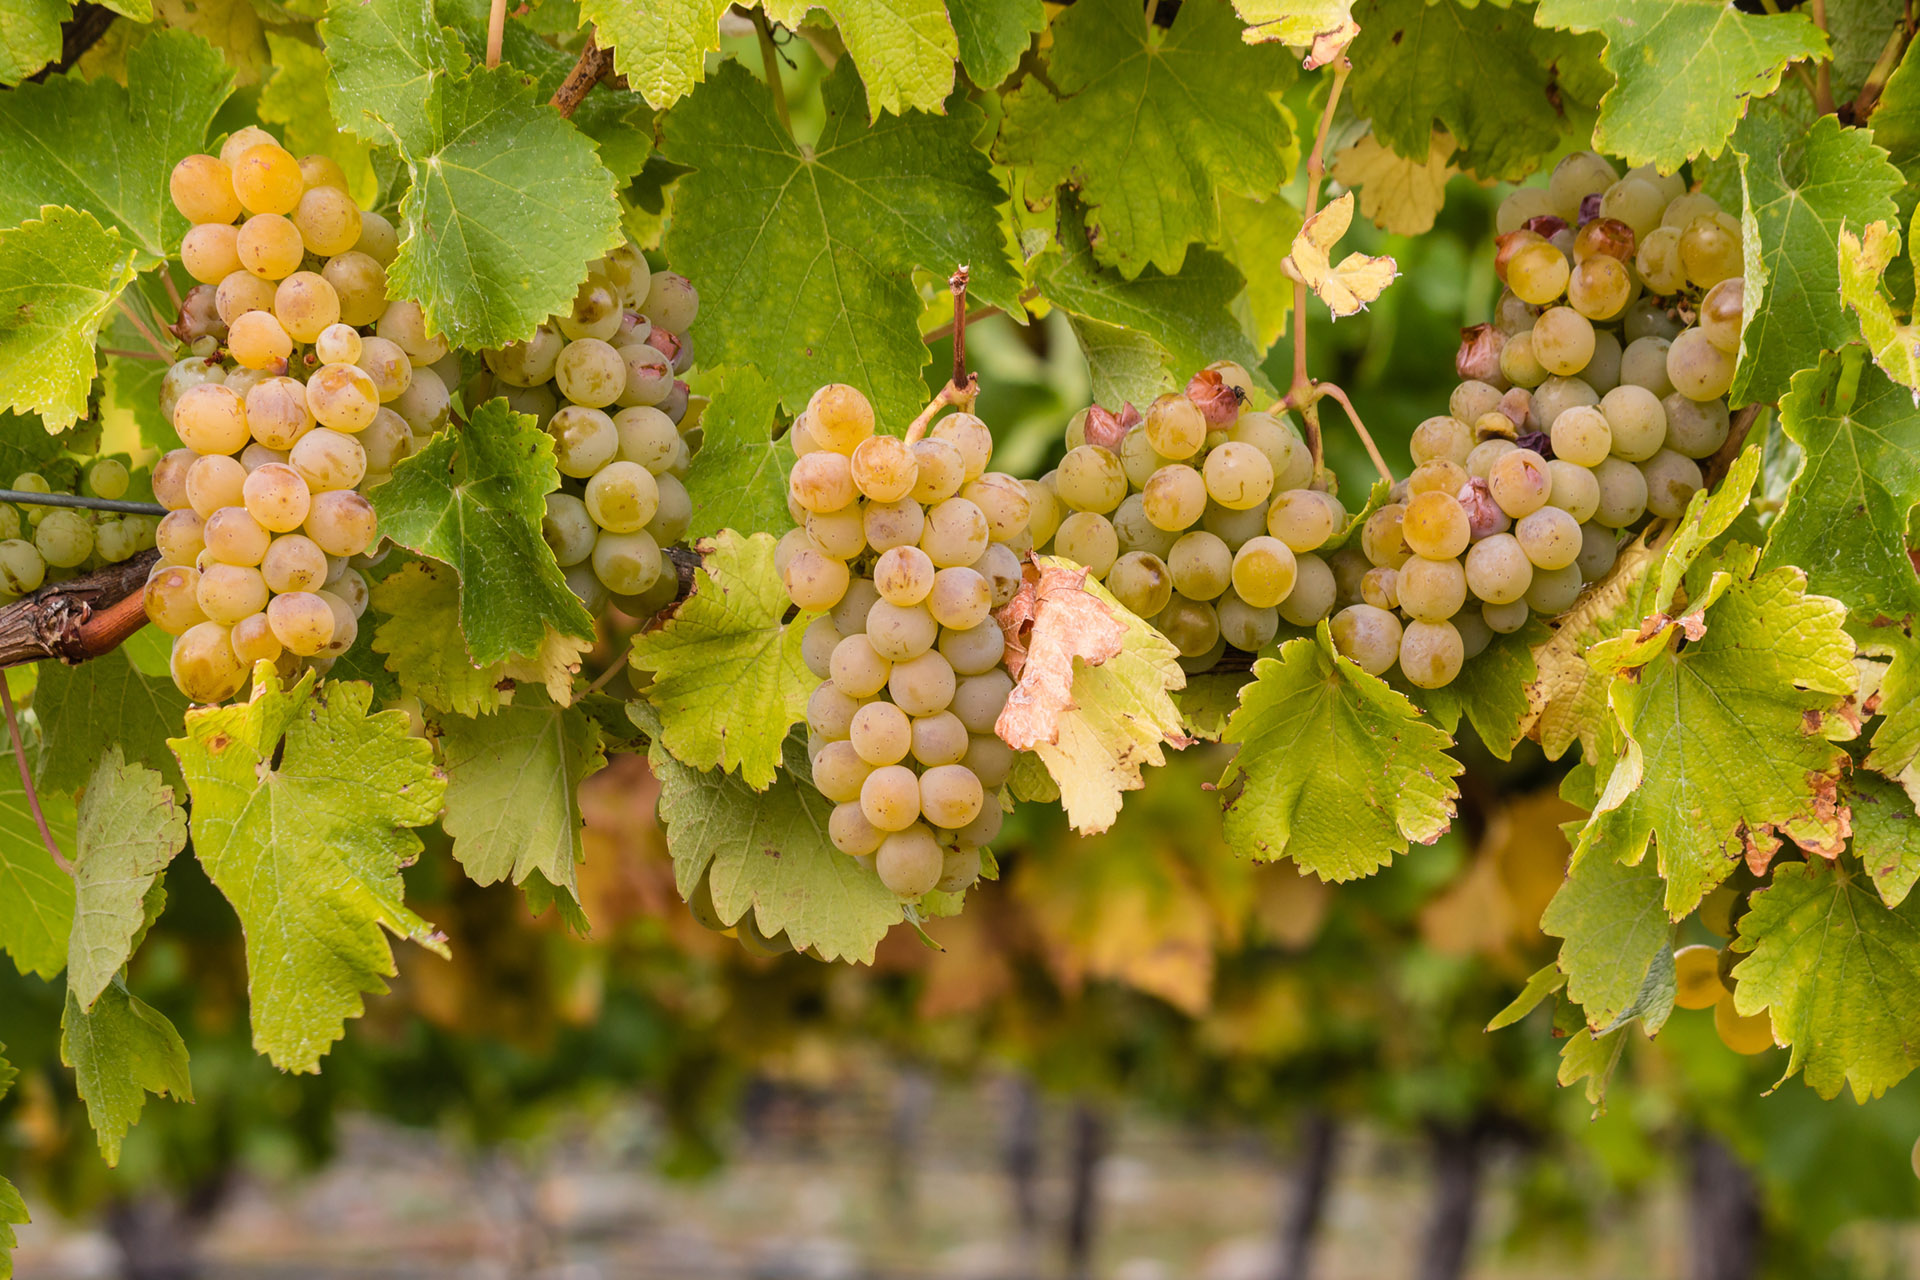 chablis_village_grape_chardonnay_photo_credit_getty_hero_1920x1280.jpg